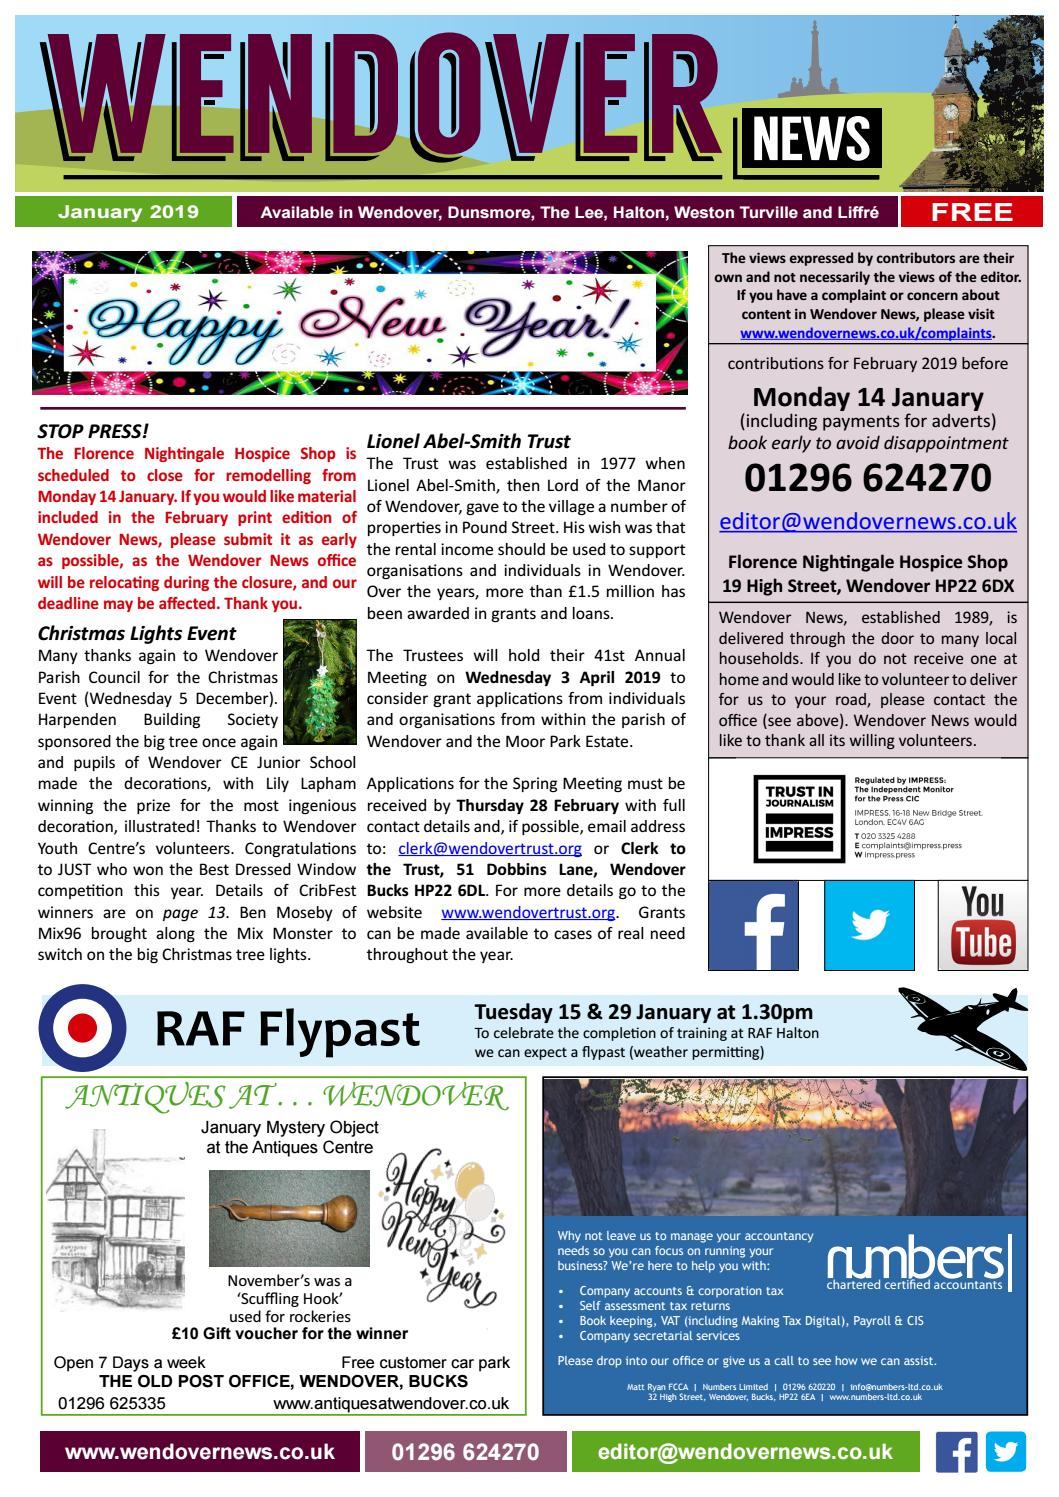 0b5d2744 Wendover News January 2019 by Wendover News - issuu